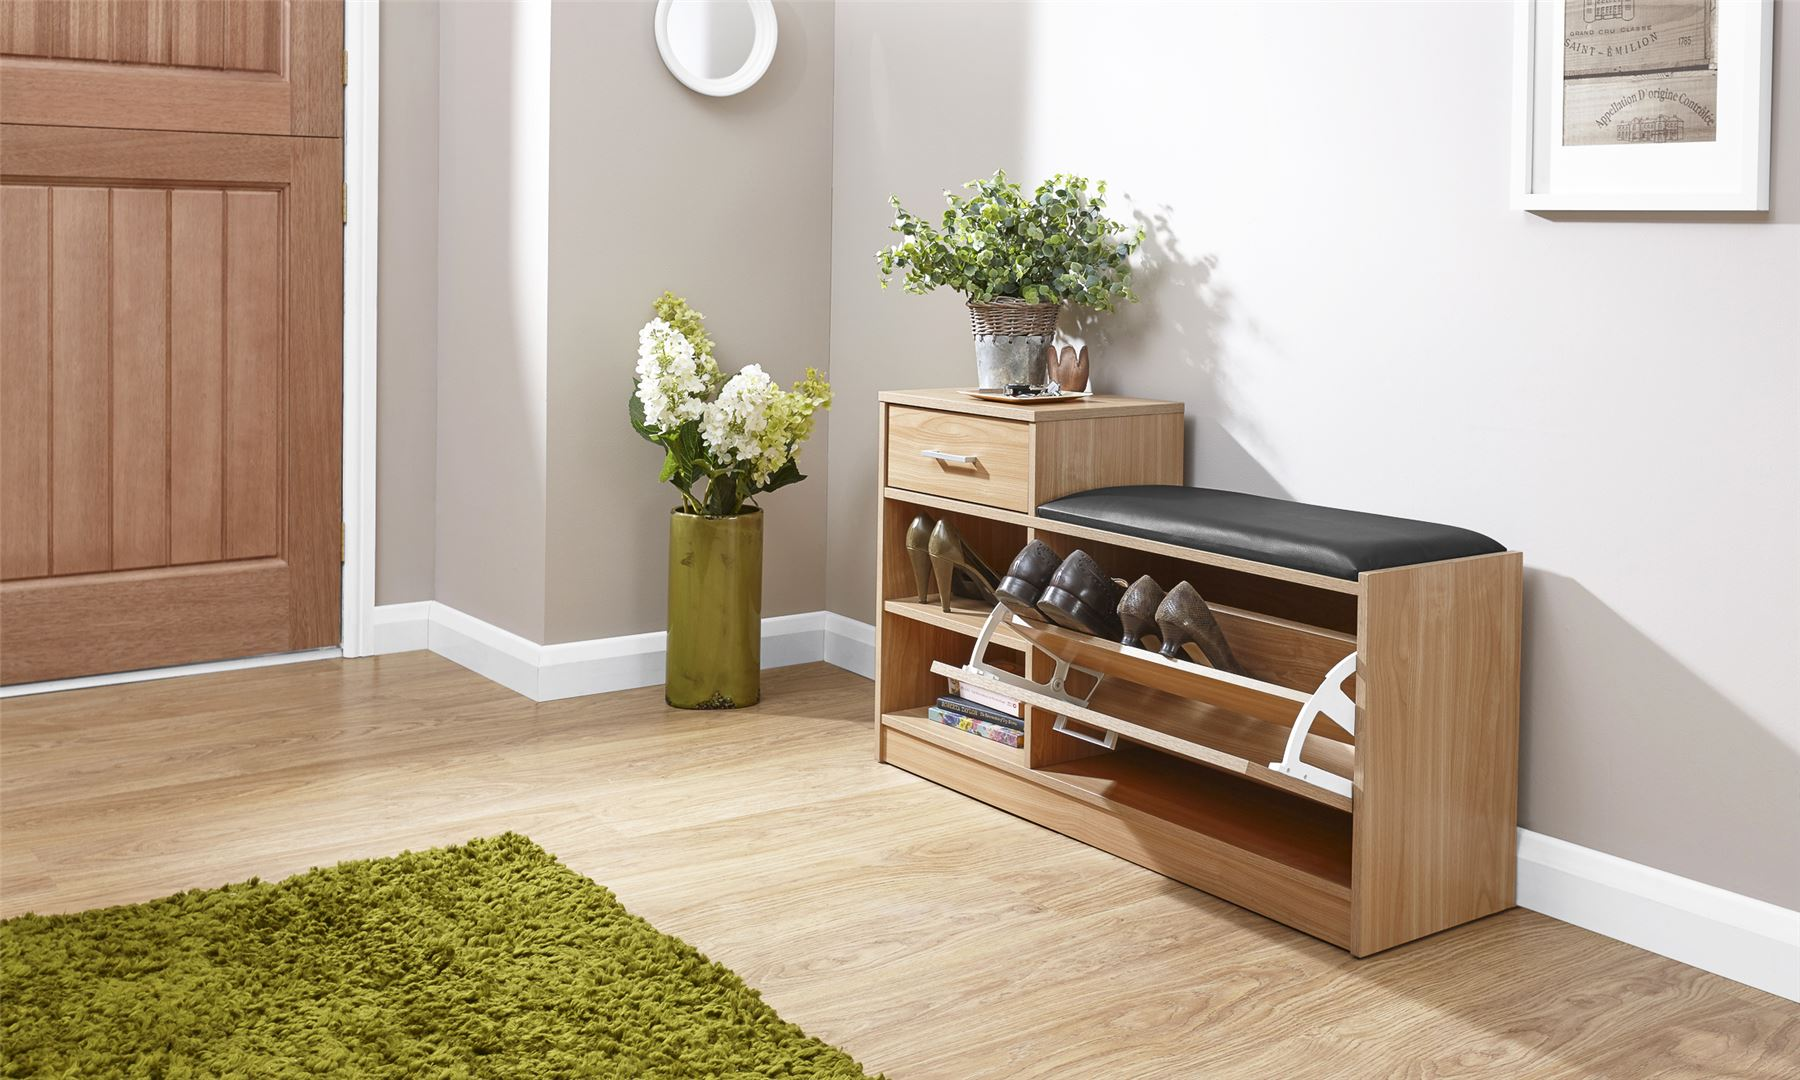 MALMO SHOE BENCH PADDED SEAT W 1 DRAWER SIDE TABLE STORAGE CUPBOARD